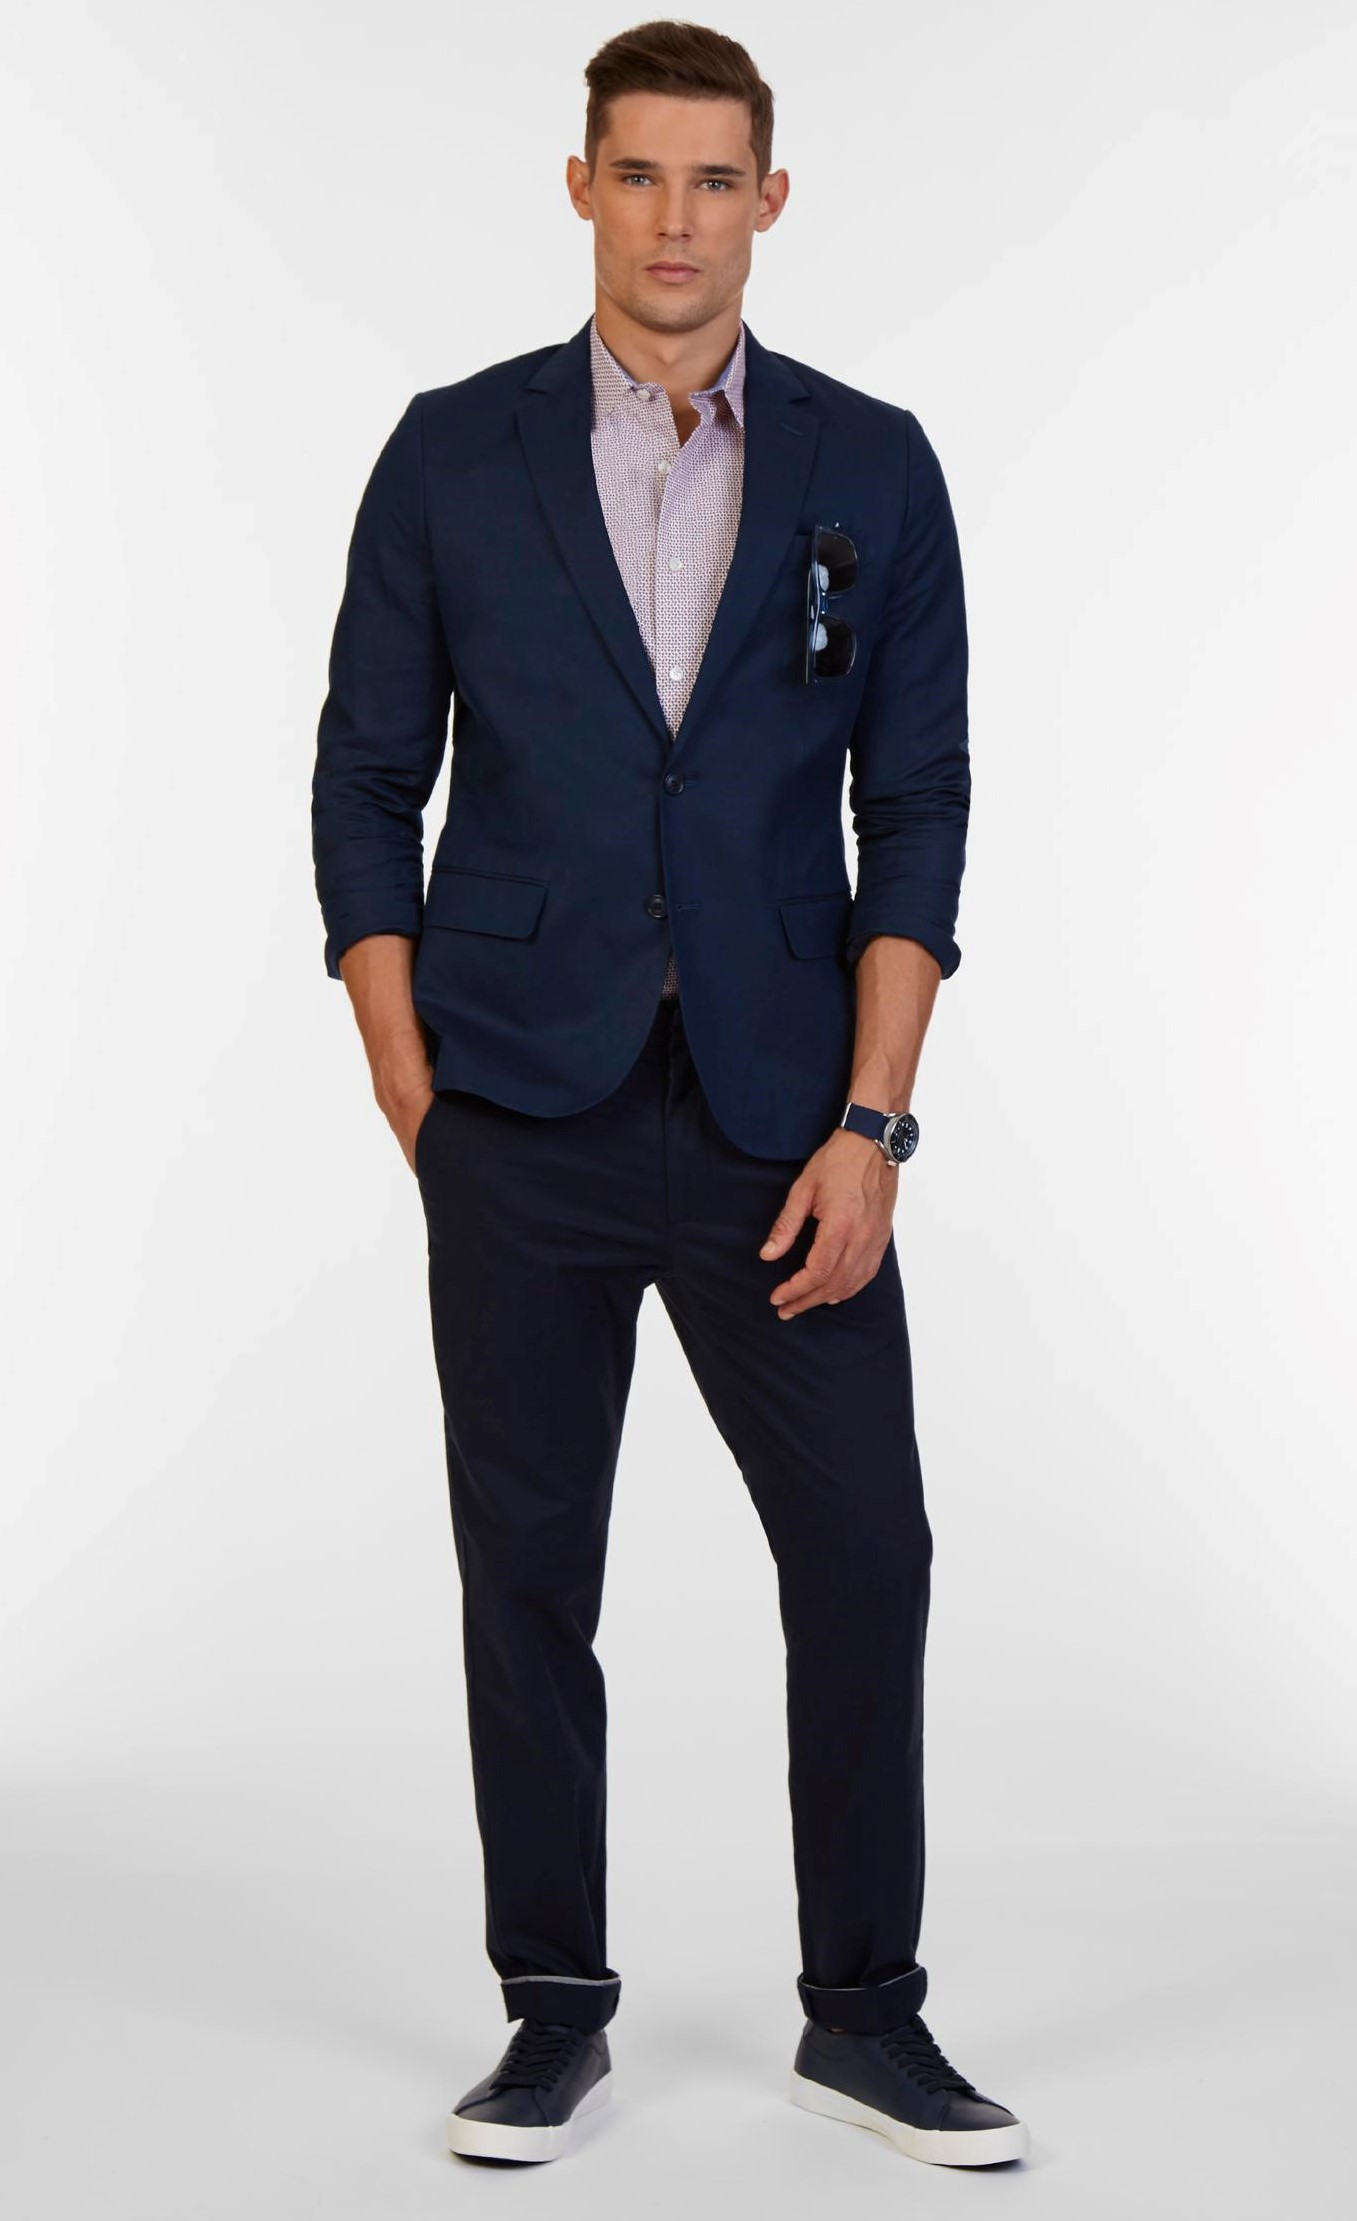 Groom Dress For Wedding Reception 98 Luxury I hope these pictures